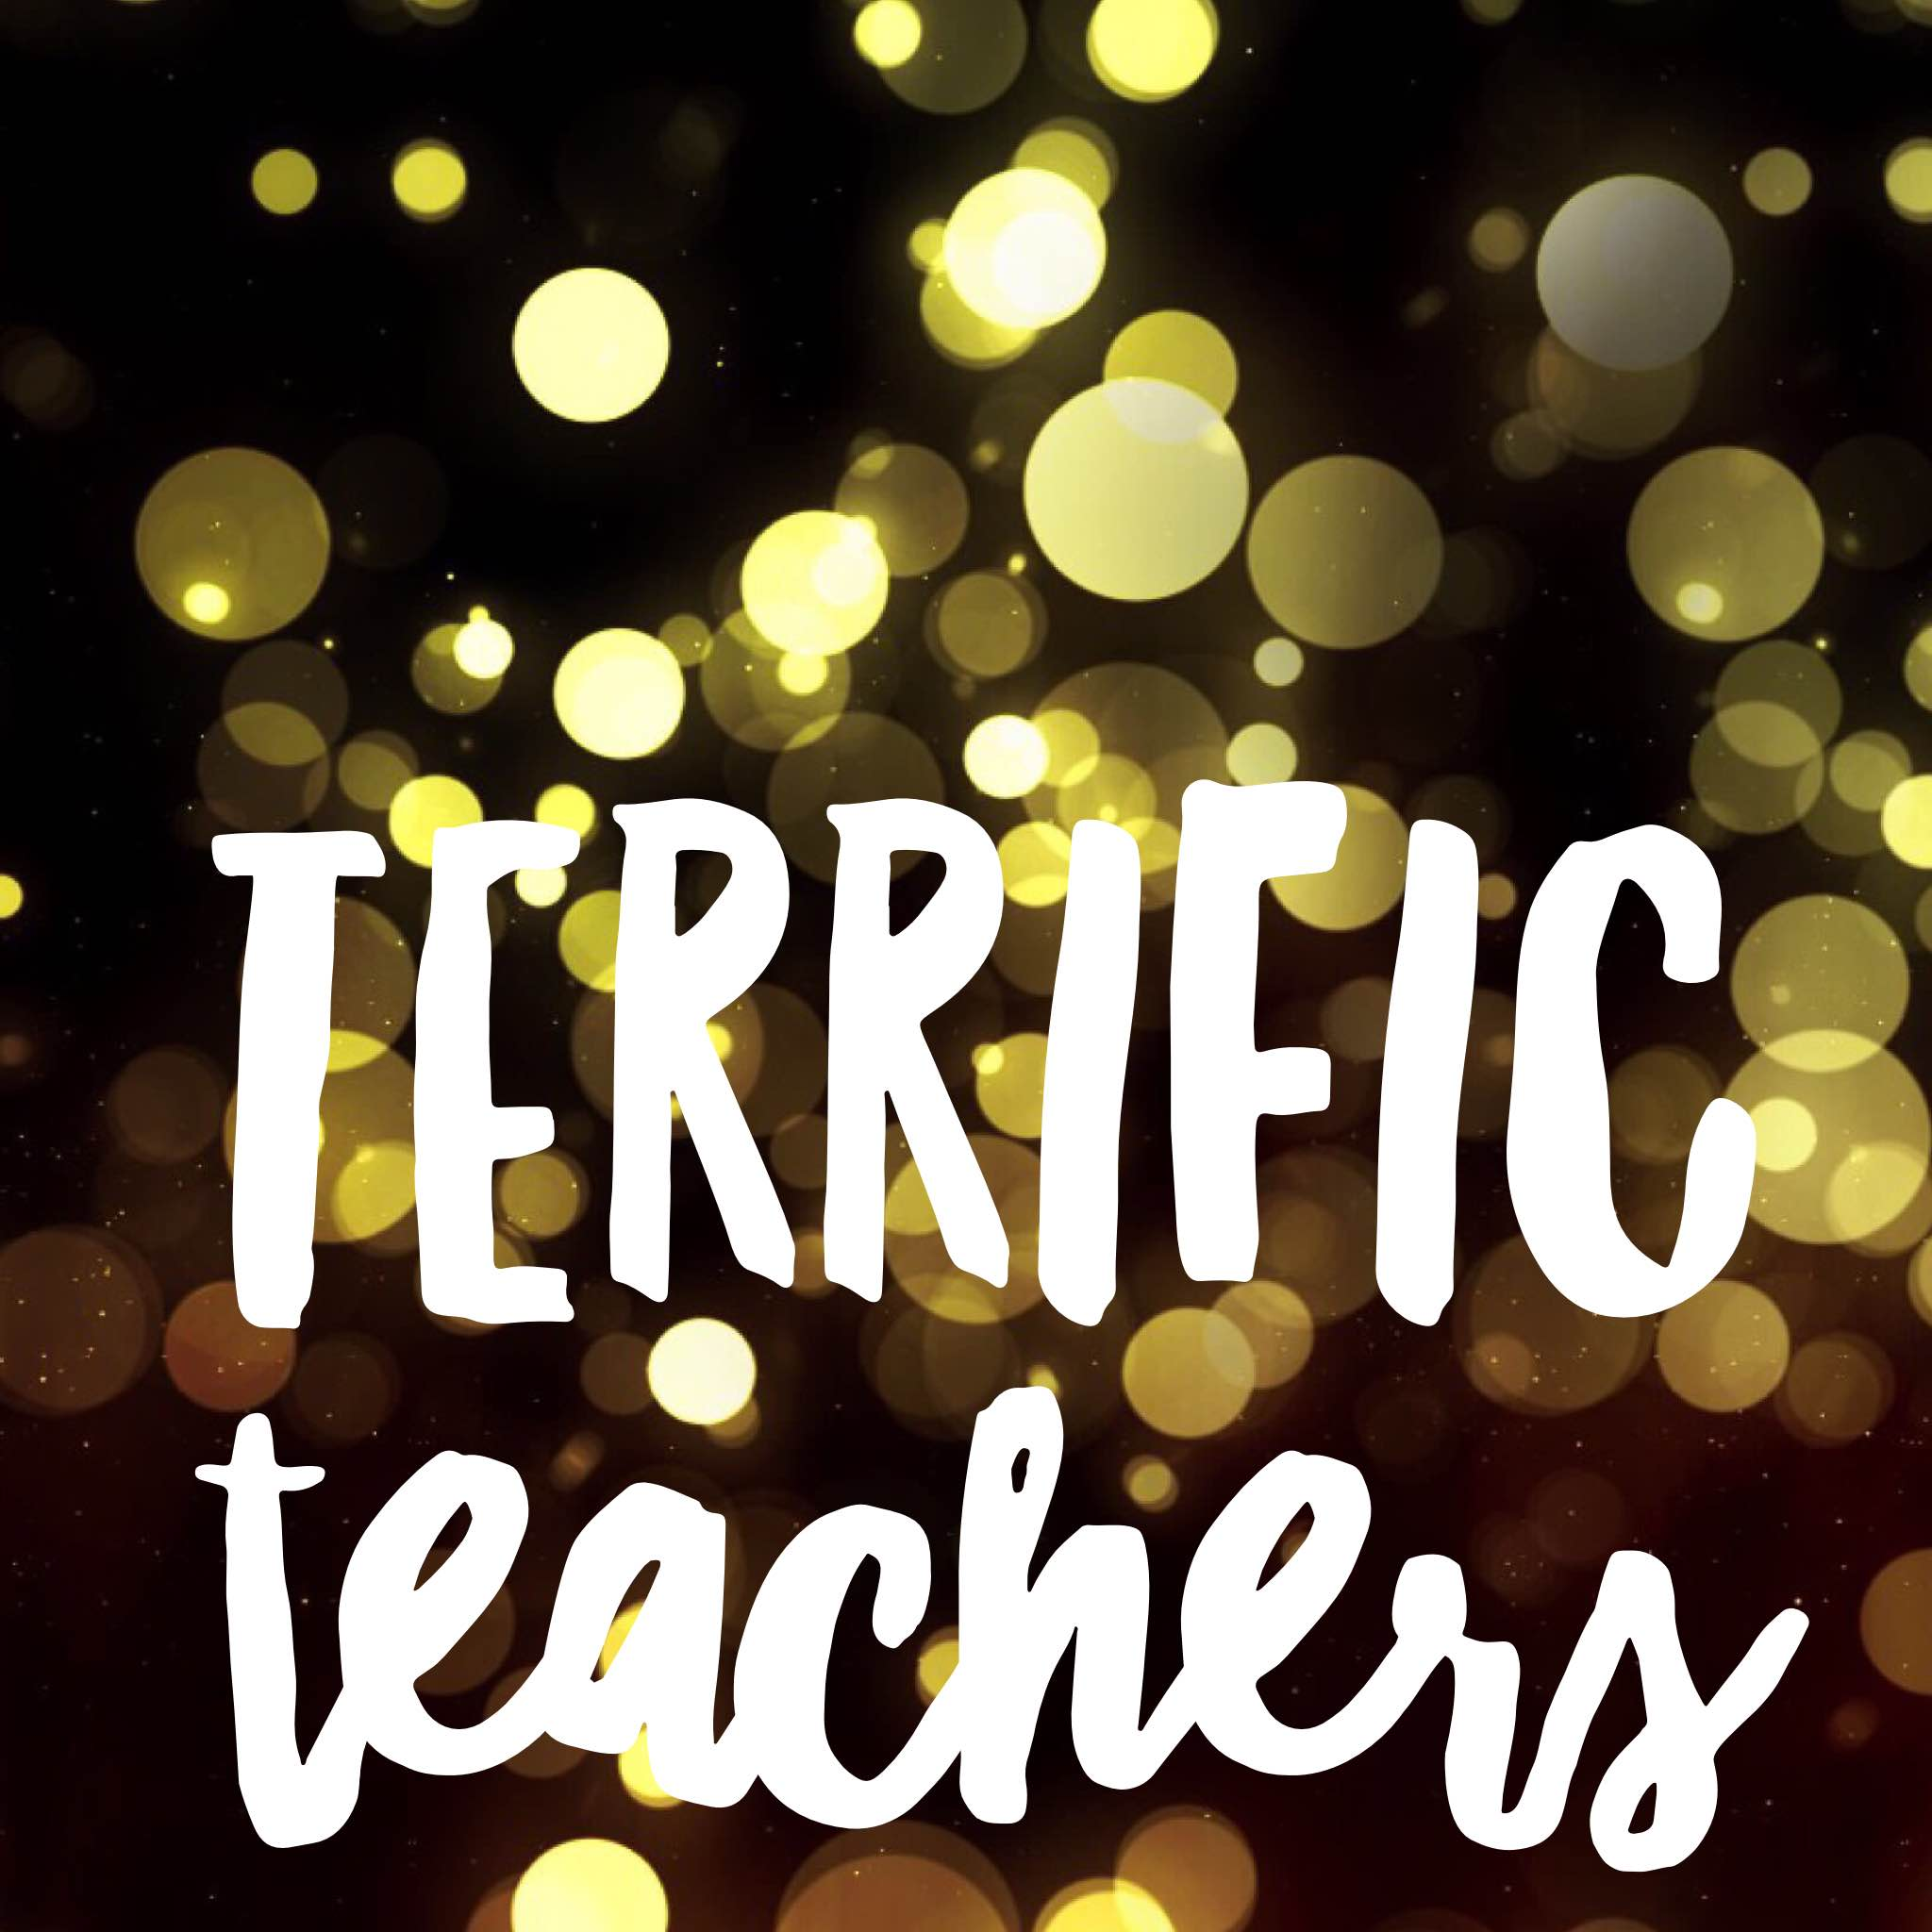 Terrific teachers title pic